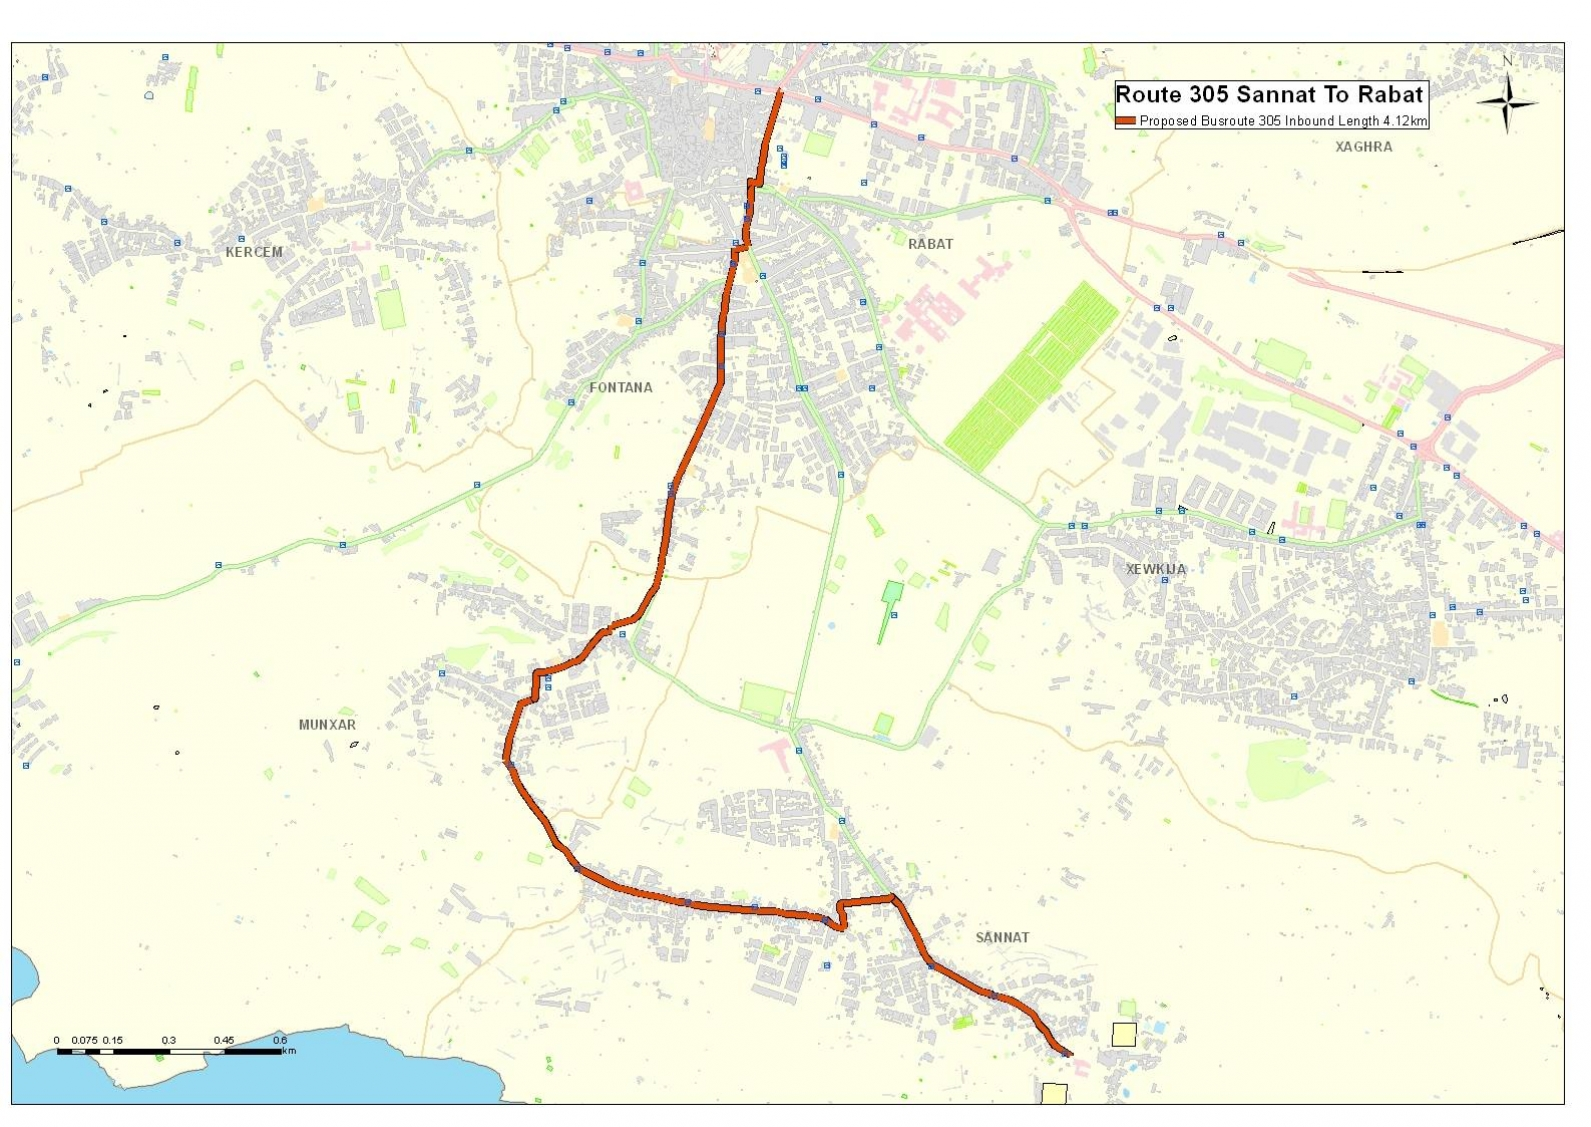 Land-current-network-routes-and-schedules-Gozo-9